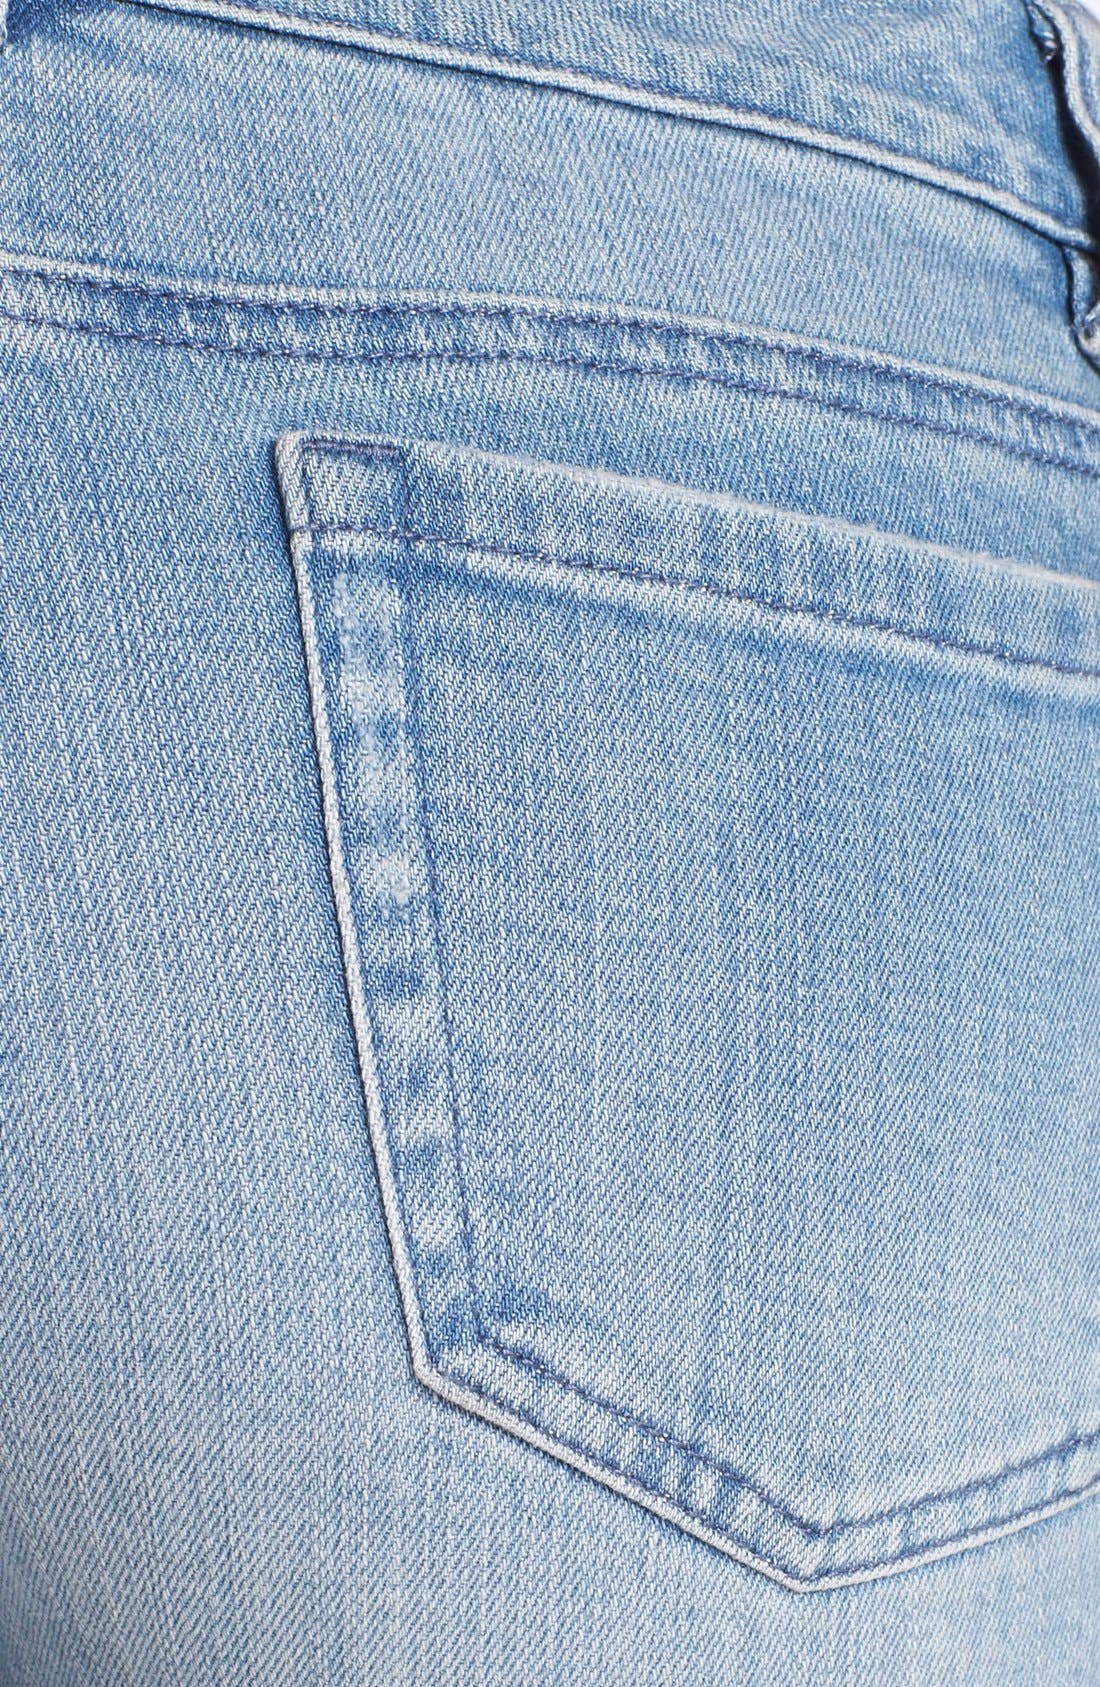 Alternate Image 3  - MICHAEL Michael Kors Zip Detail Skinny Jeans (Village Blue)